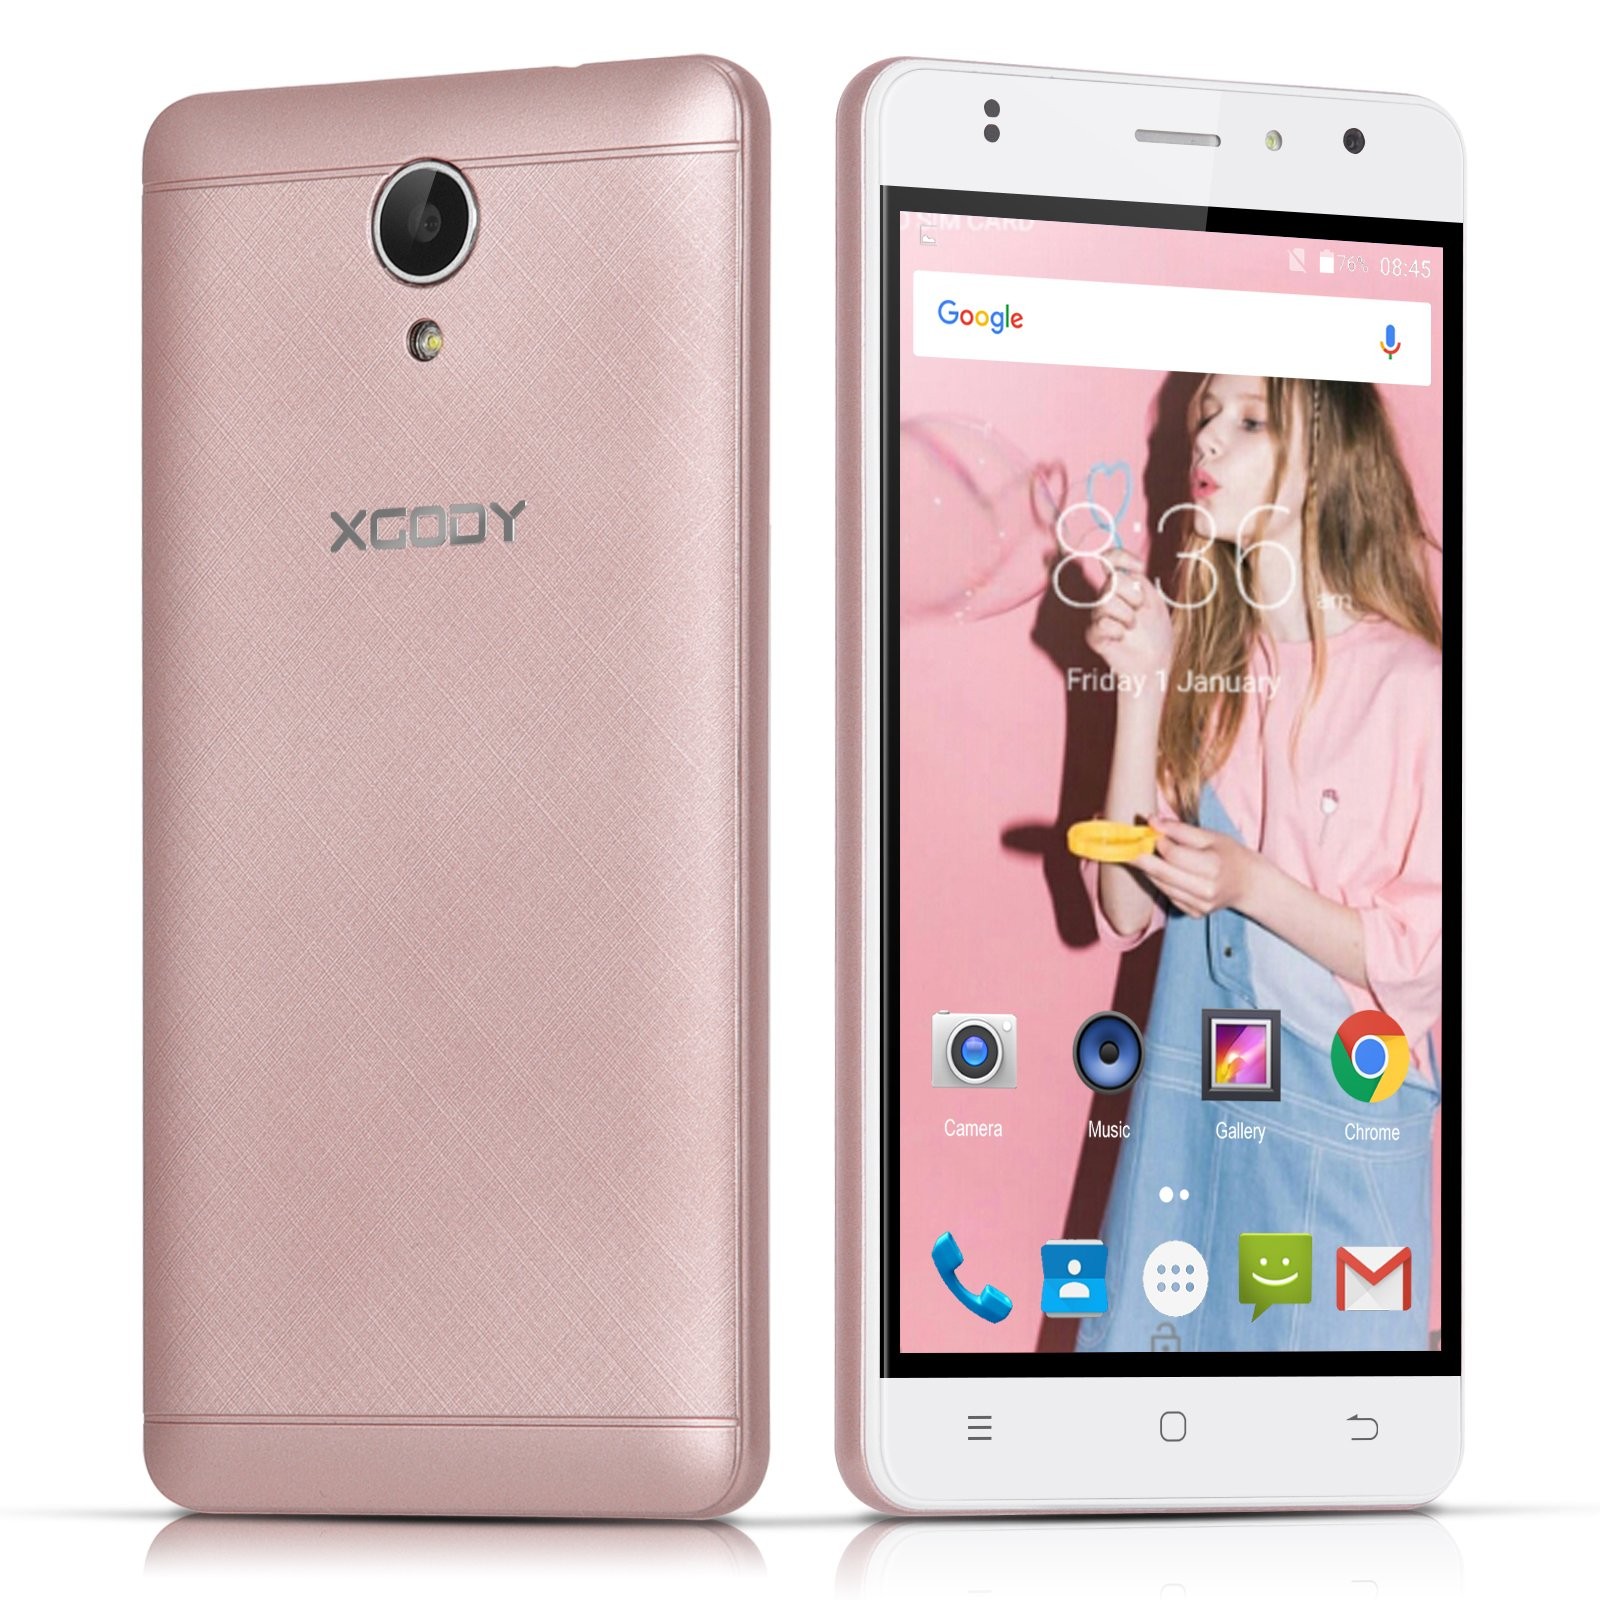 Xgody 4g Cell Phones Unlocked 16GB ROM 1GBA RAM Android 6.0 5 Inch Quad-Core 720 x 1280 Pixels HD Screen 8MP Camera Wifi Dual Sim Telefono Android Desbloqueado Rose Gold